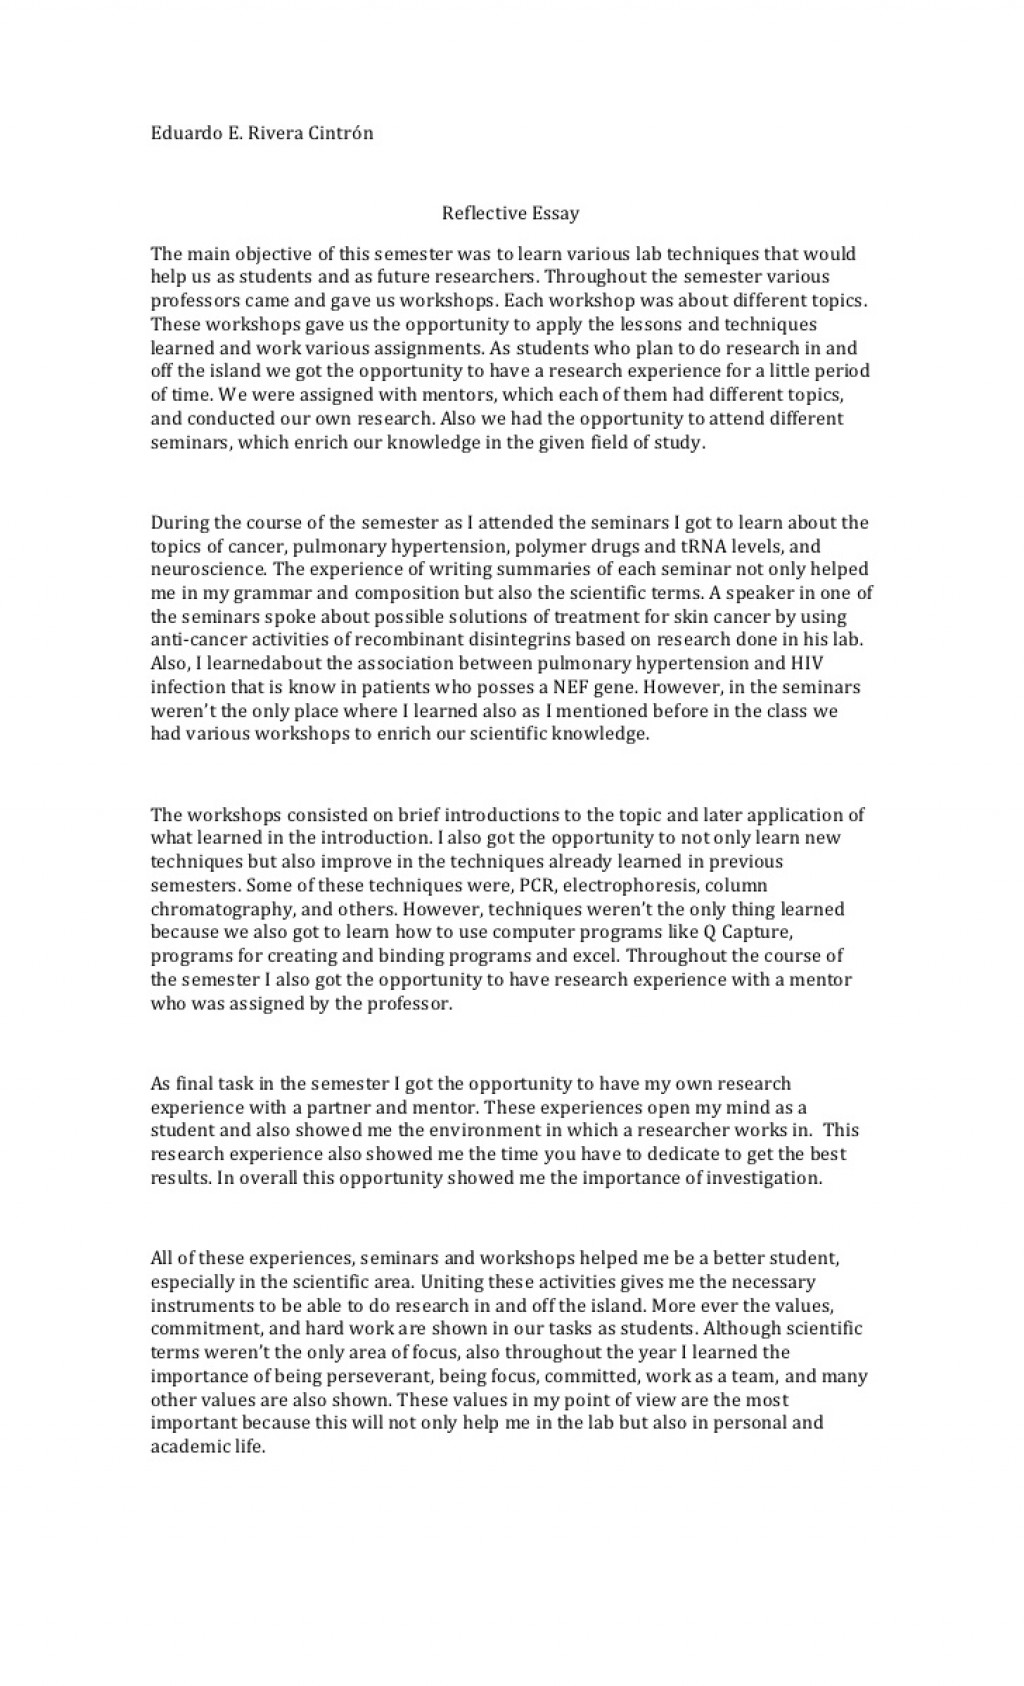 006 Essay Example How To Write Marvelous Reflective A Introduction On Book Do You Large